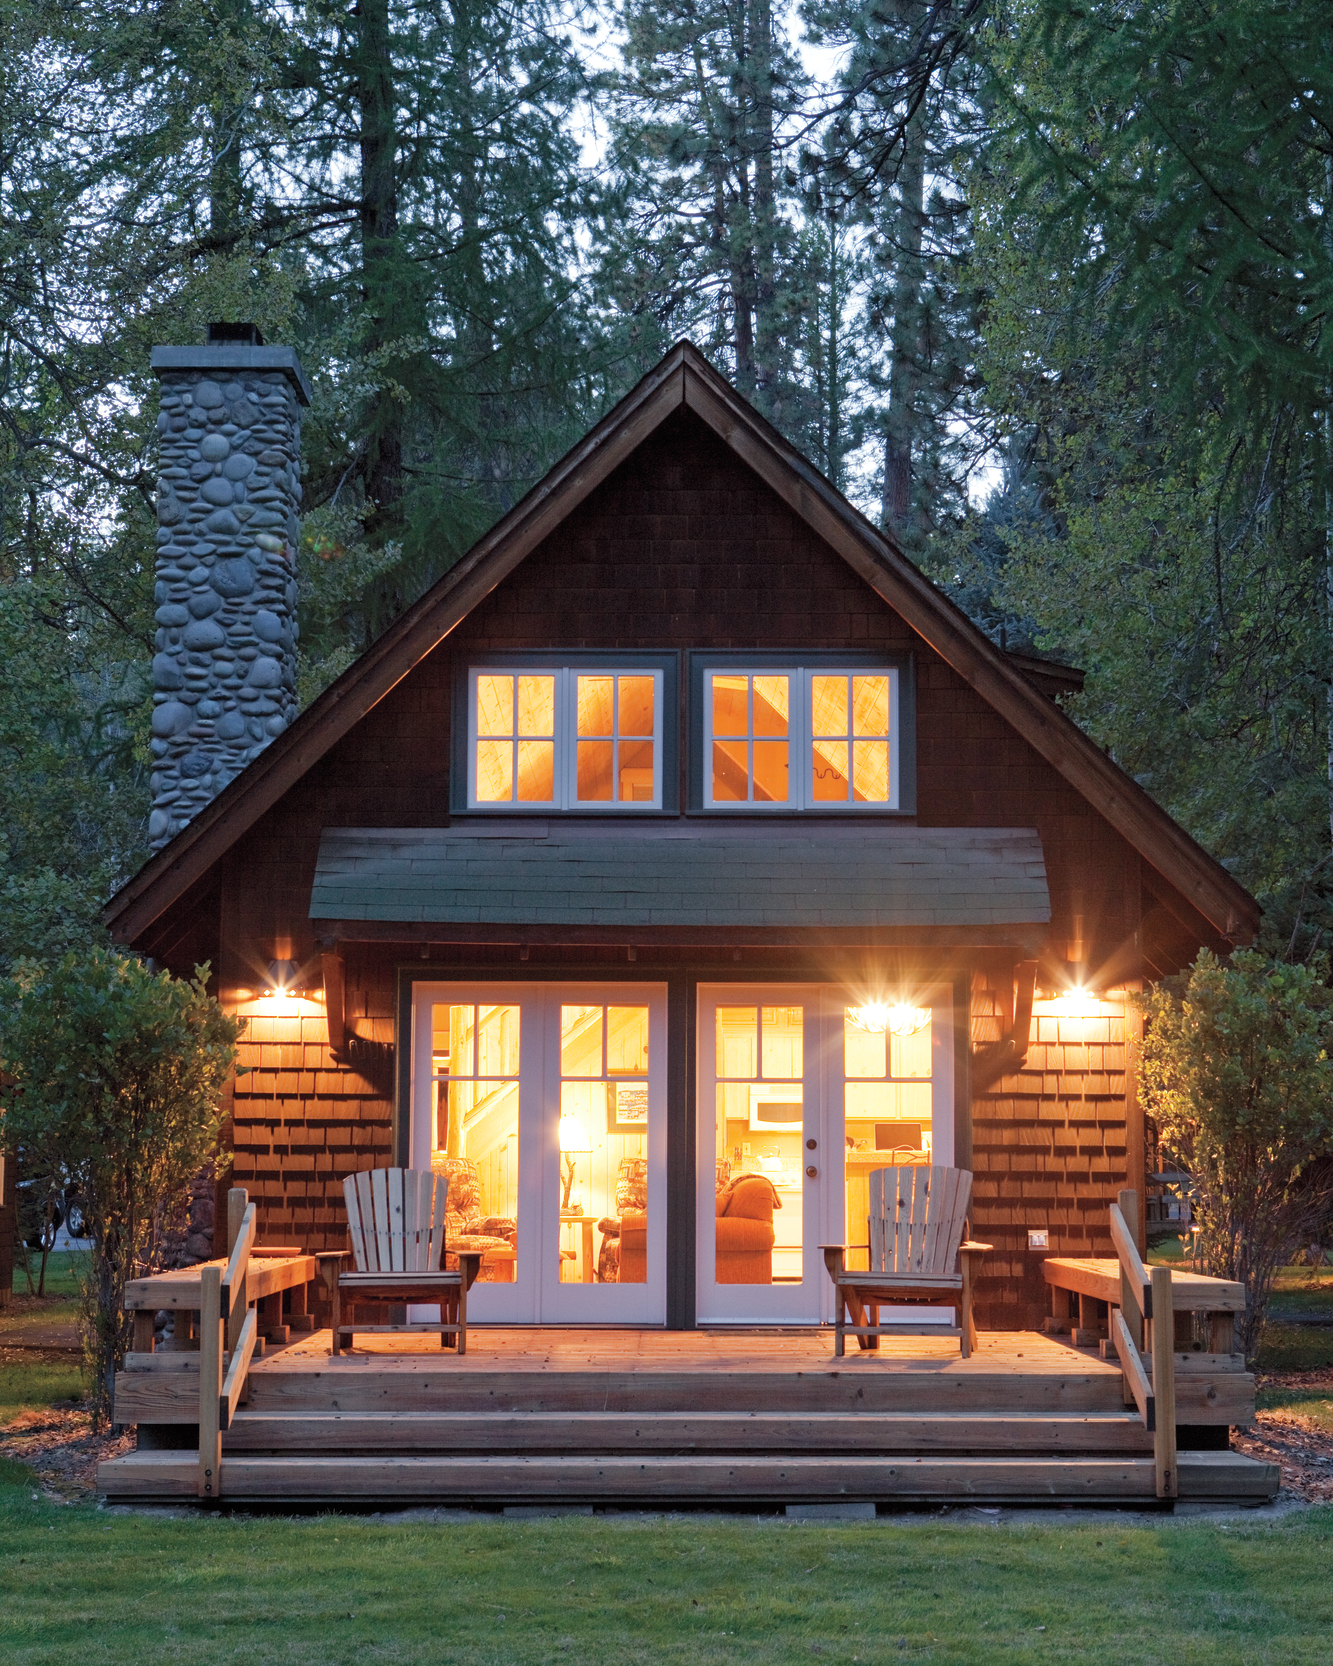 metolius-river-resort-cabin-md108103.jpg